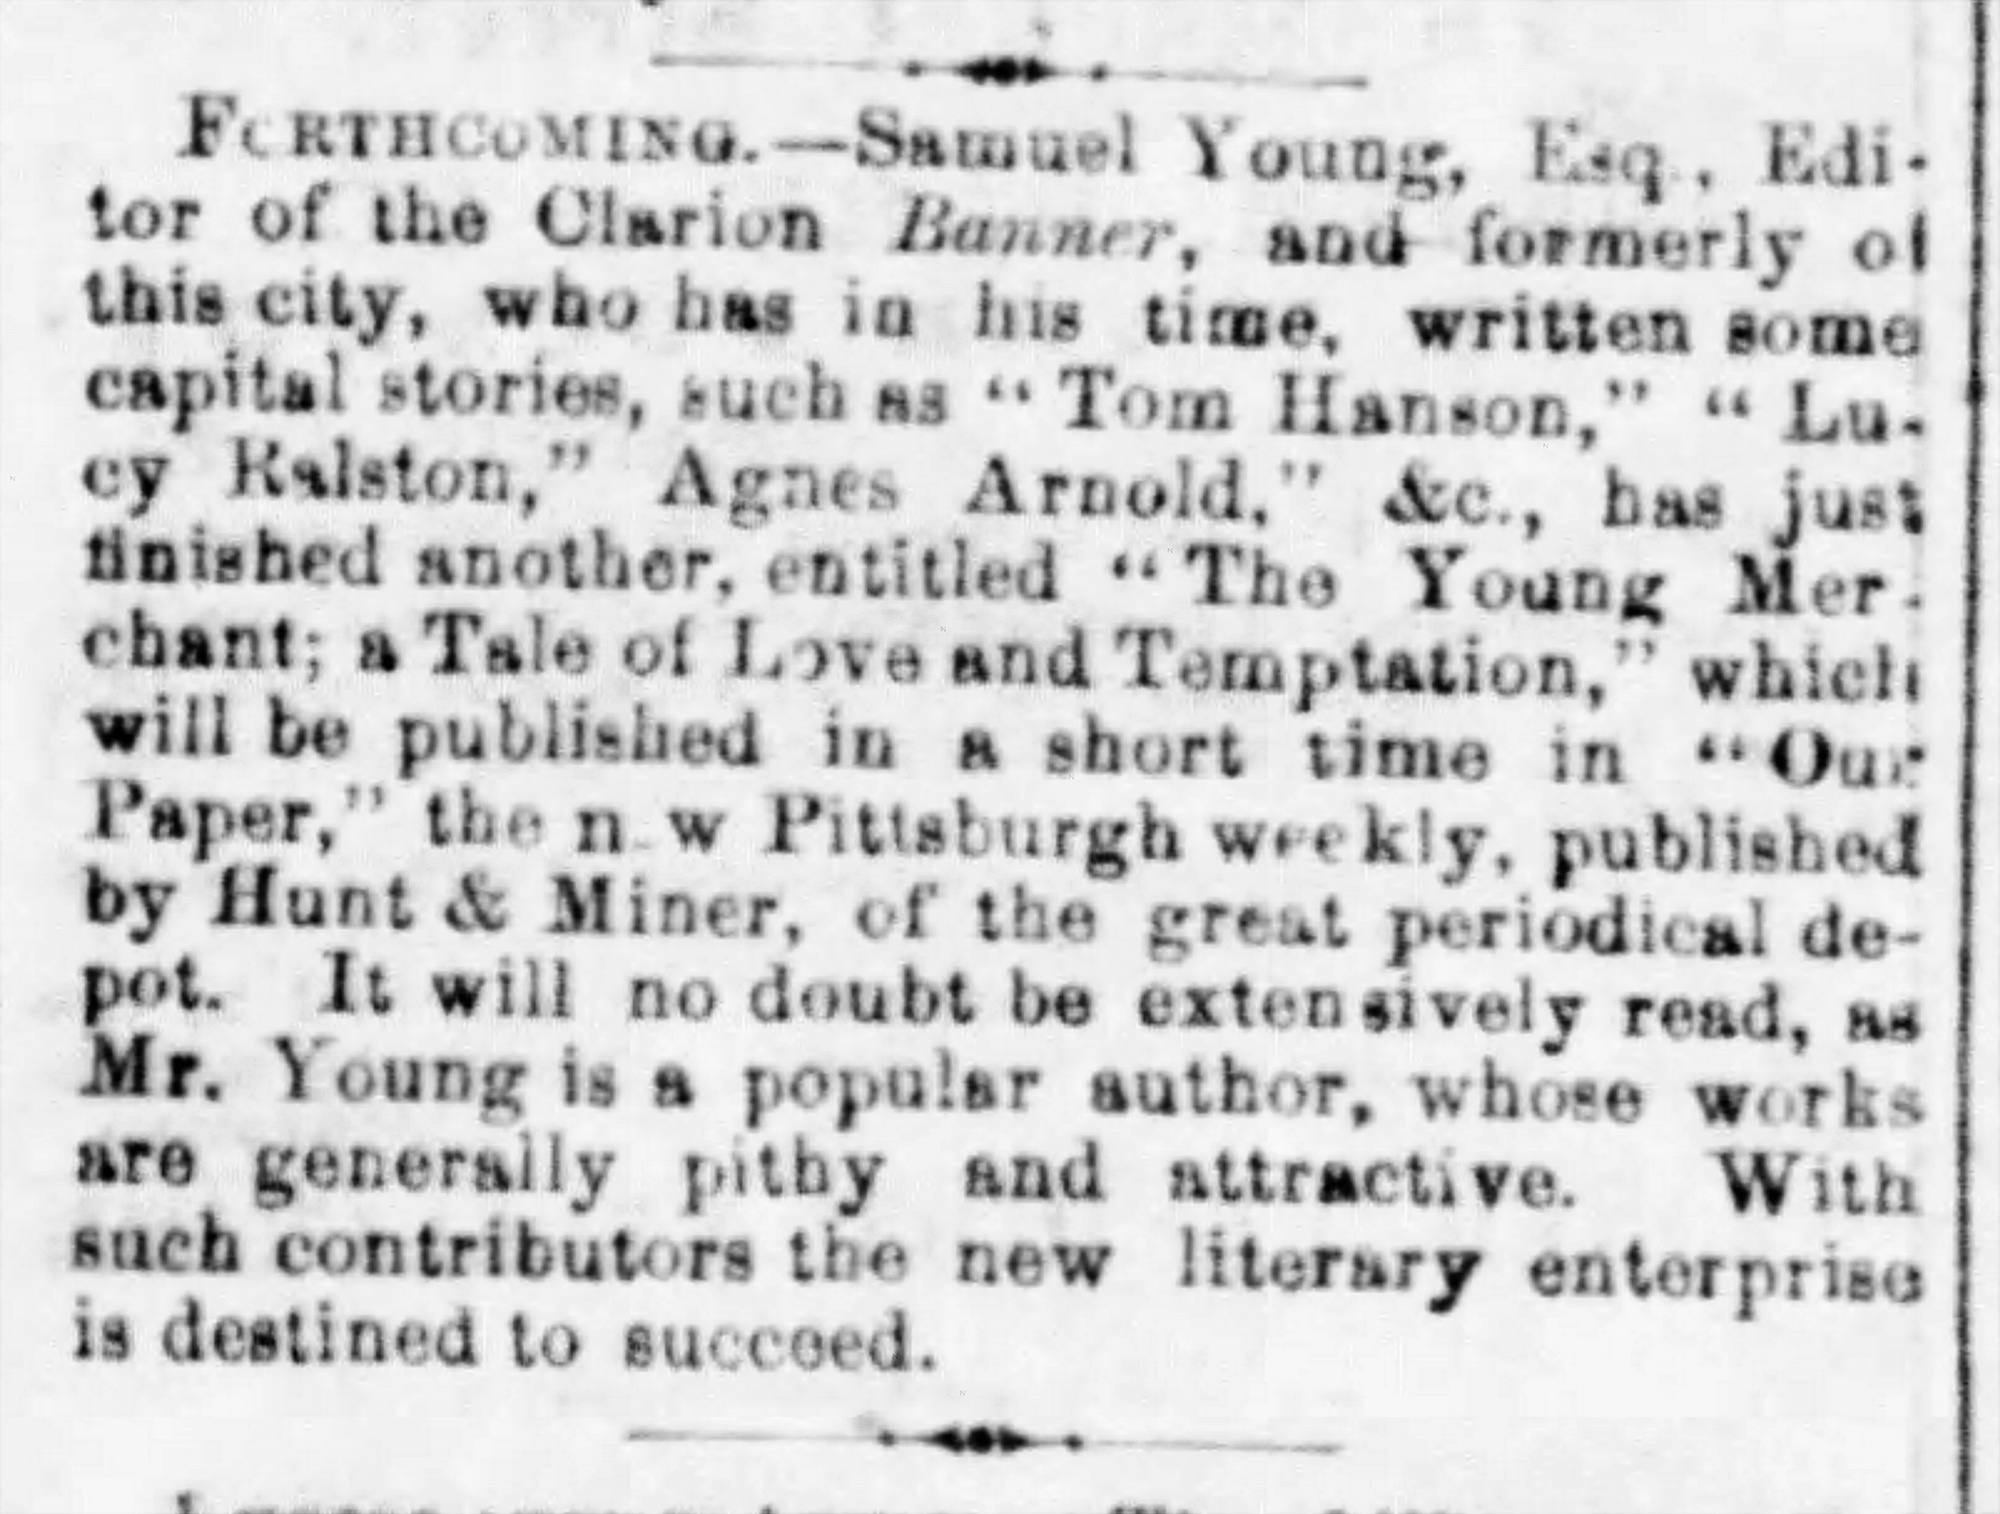 Newspaper notice of an upcoming story by Sam Young, 1861. Pittsburgh Daily Post, March 30, 1861.